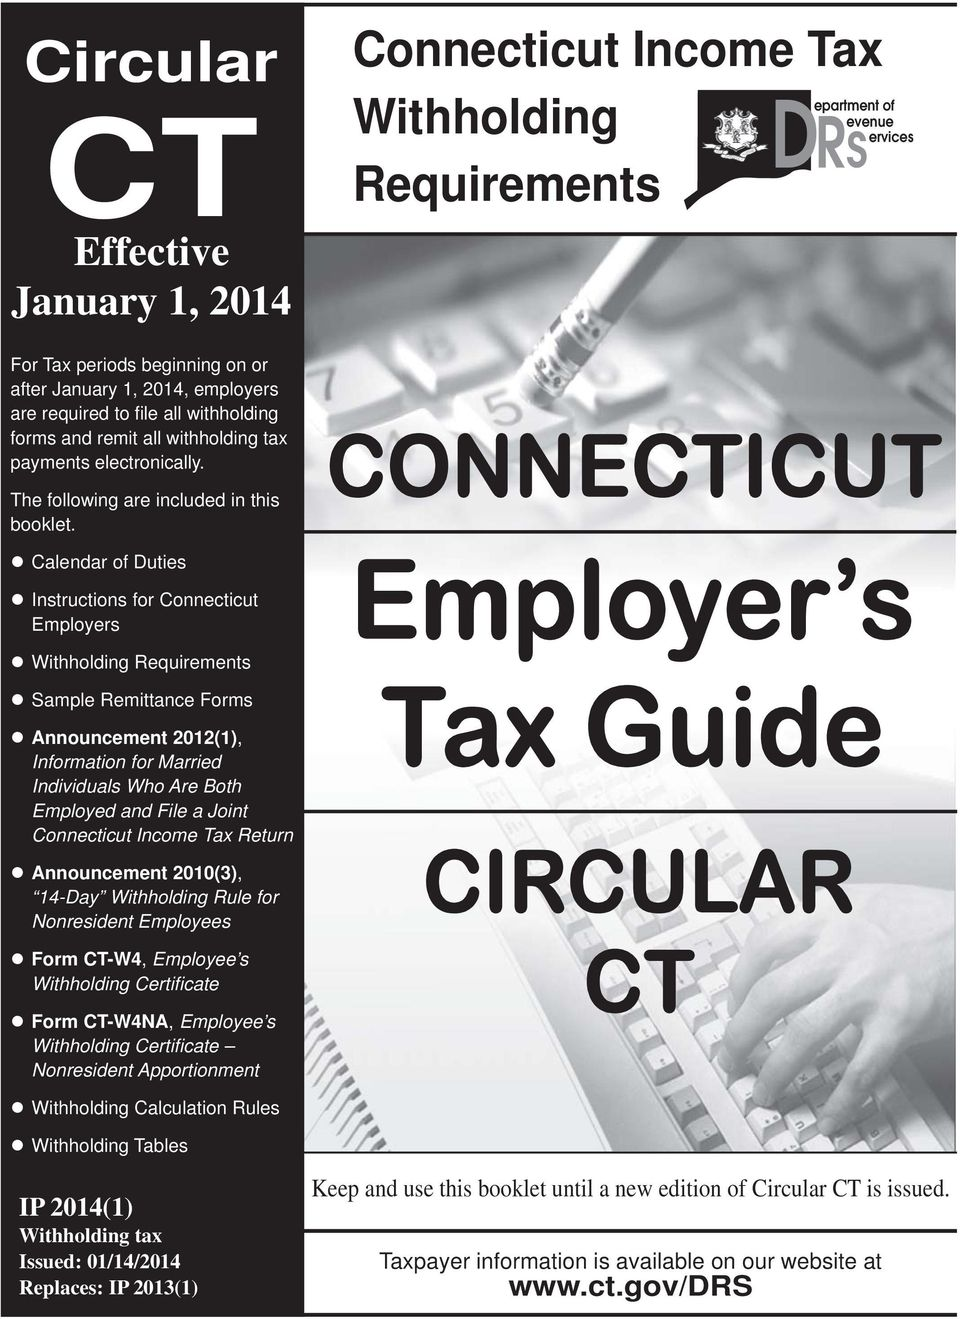 Calendar of Duties Instructions for Connecticut Employers Connecticut Income Tax Withholding Requirements epartment of evenue ervices DRS CONNECTICUT Employer s Withholding Requirements Sample